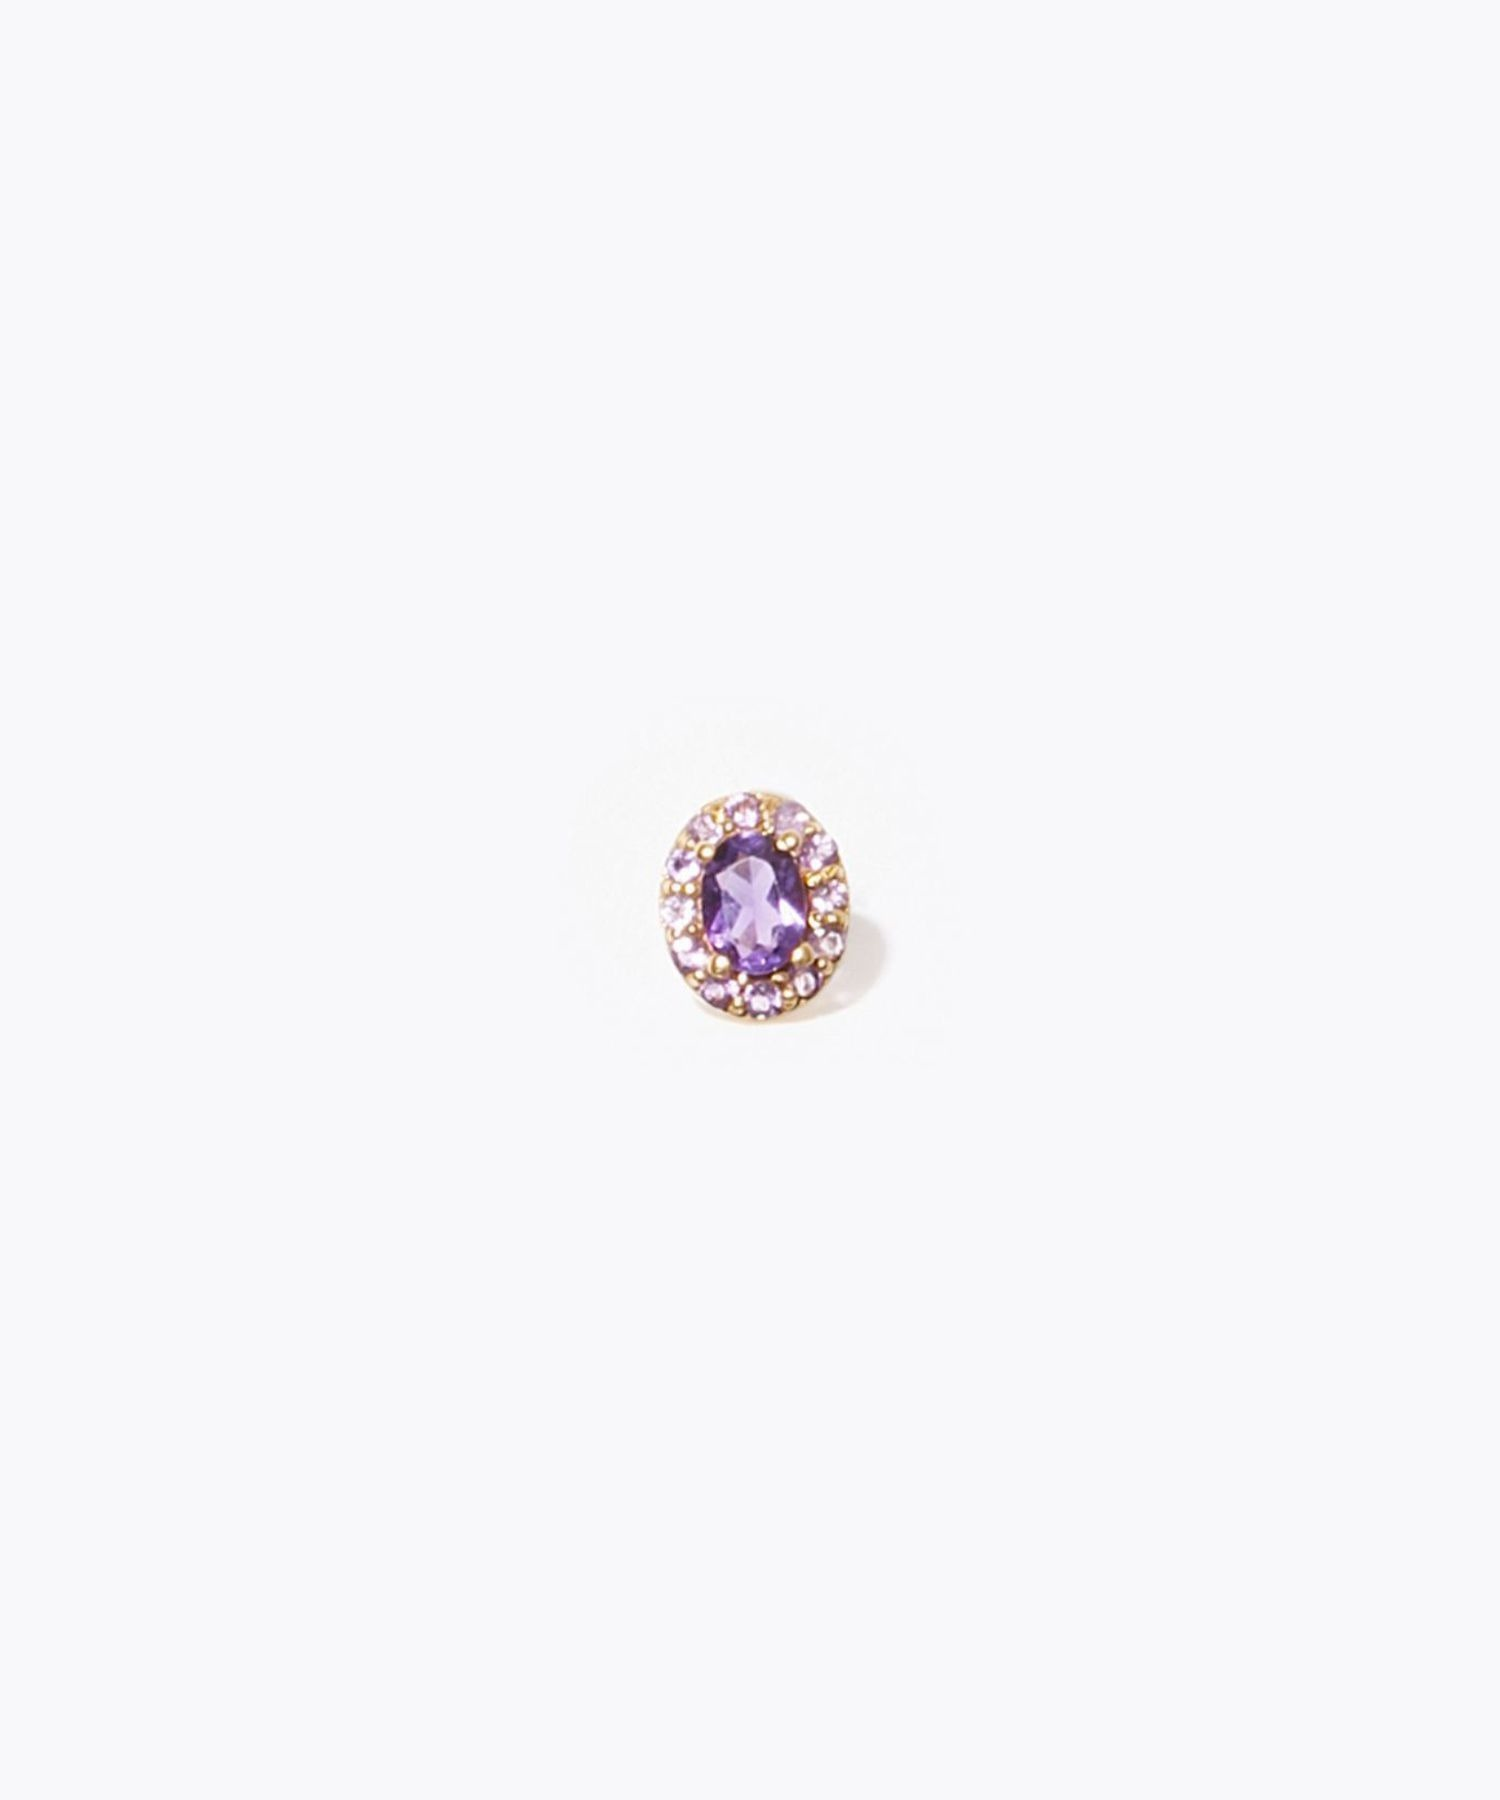 [eden] K10 oval amethyst and pave amethyst stud pierced earring